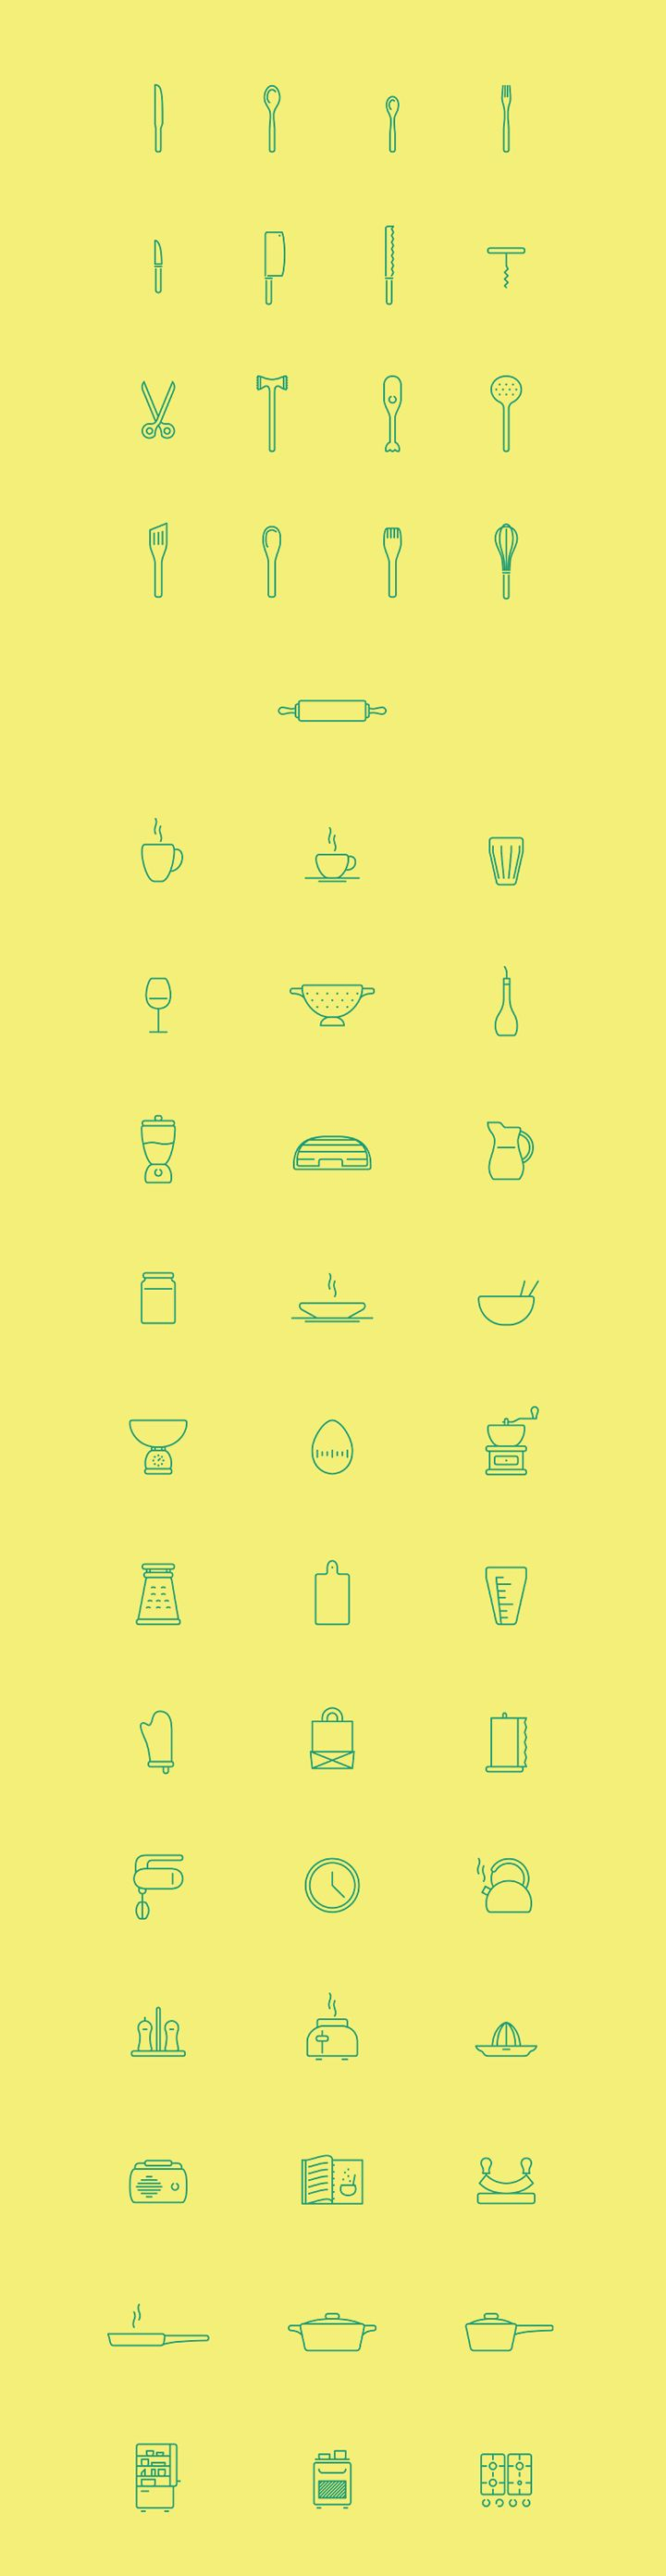 Today we have for you a a set of 53 free kitchen icons that will work great in a variety of restaurant or food branding projects. All icons are scalable.